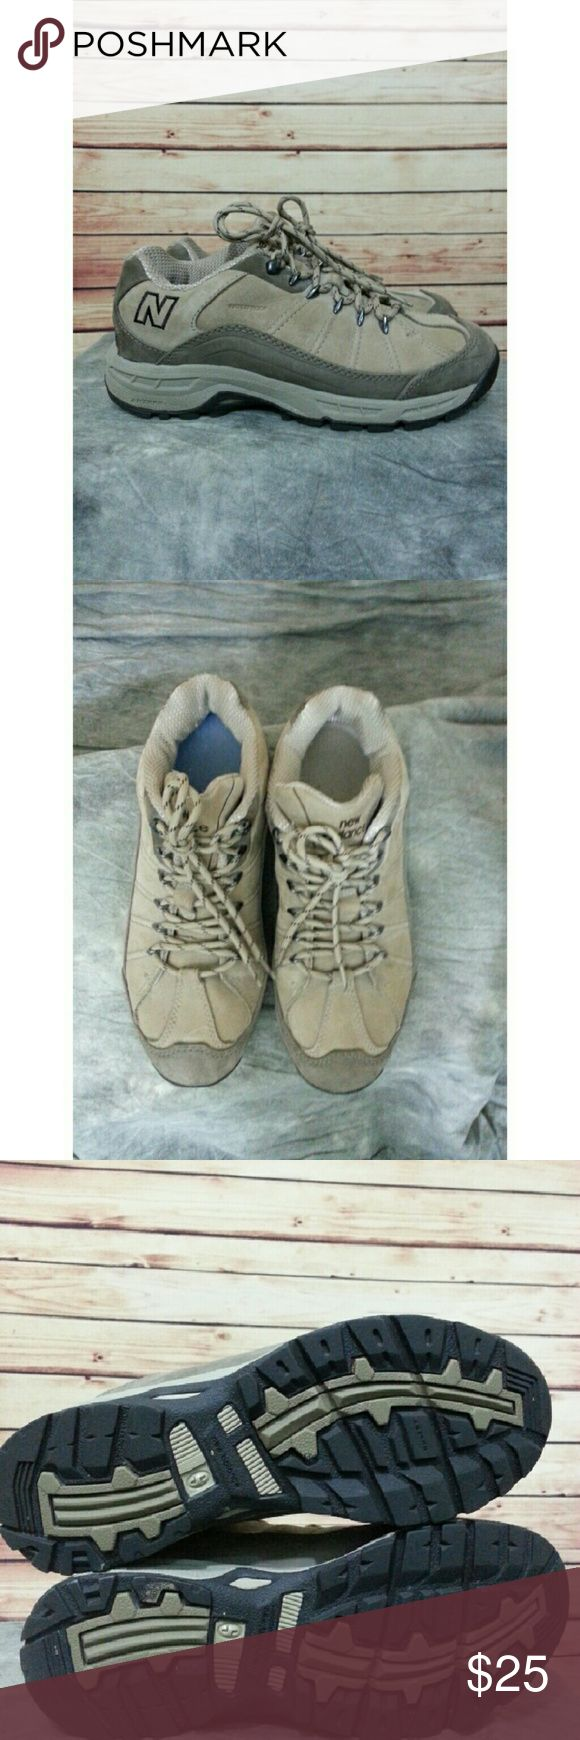 New Balance waterproof  hiking walking shoes 9 D New Balance 966. Insoles are different colors but both are New Balance insoles. Soles show very little wear. New Balance Shoes Athletic Shoes